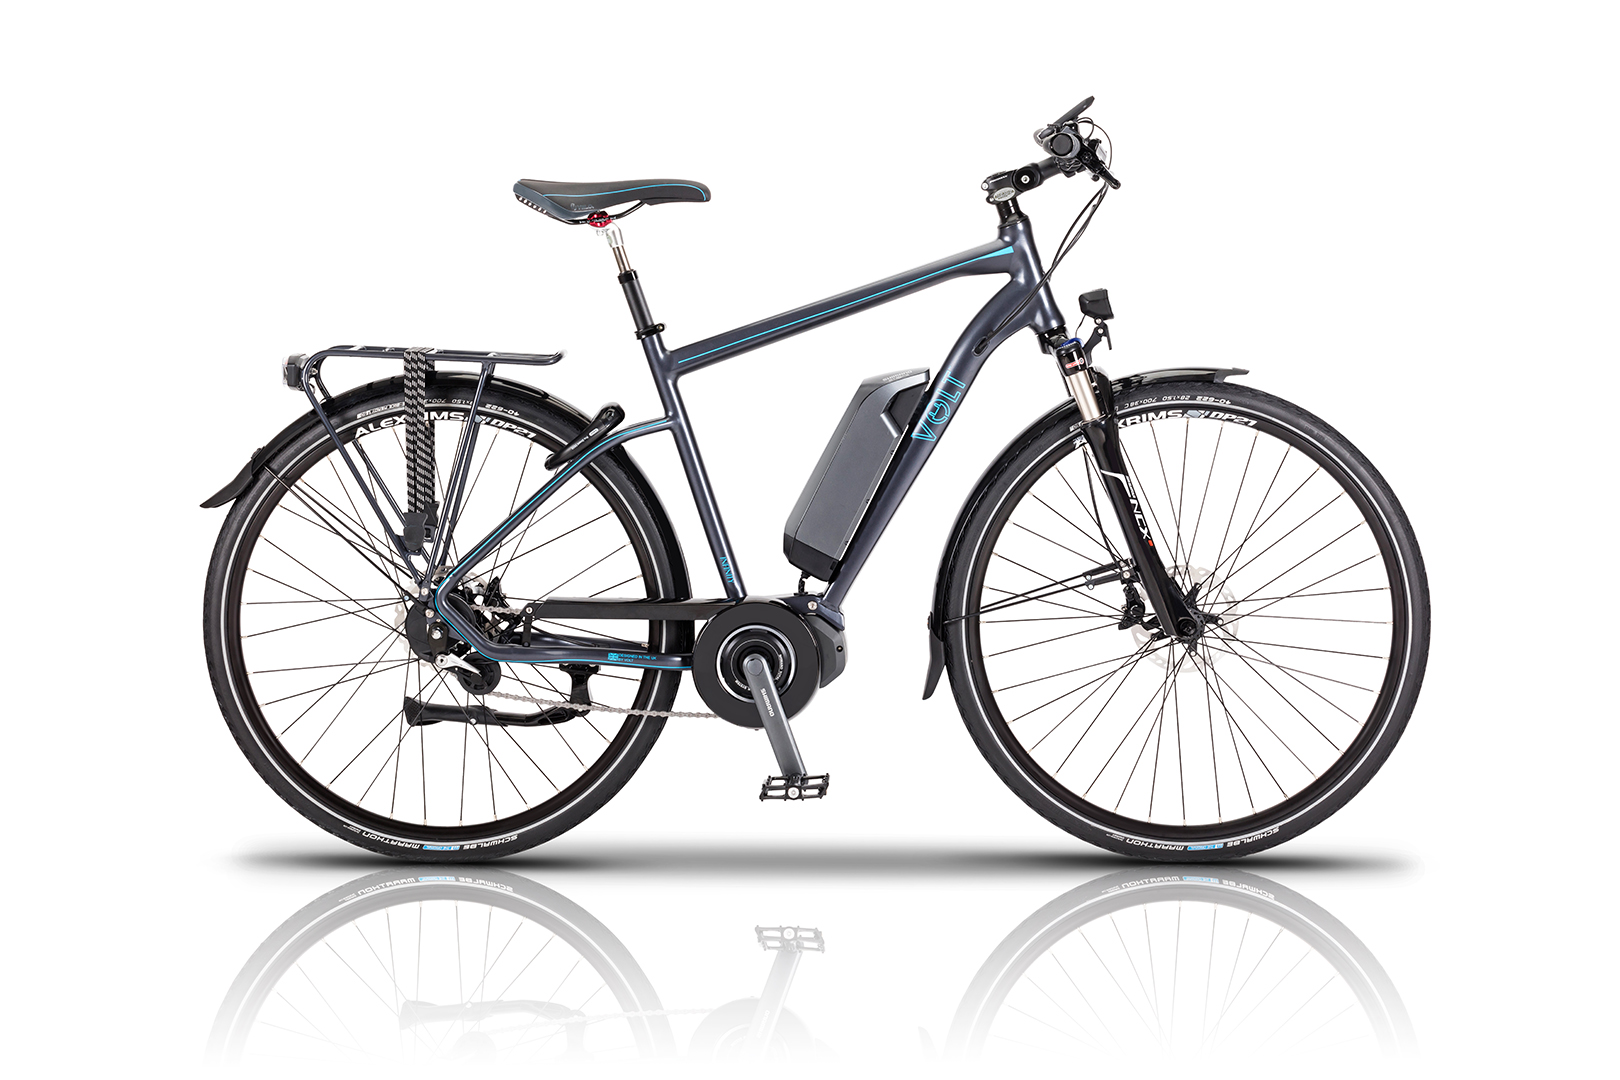 Infinity 2019 Model Shimano STEPS e-bike from Volt